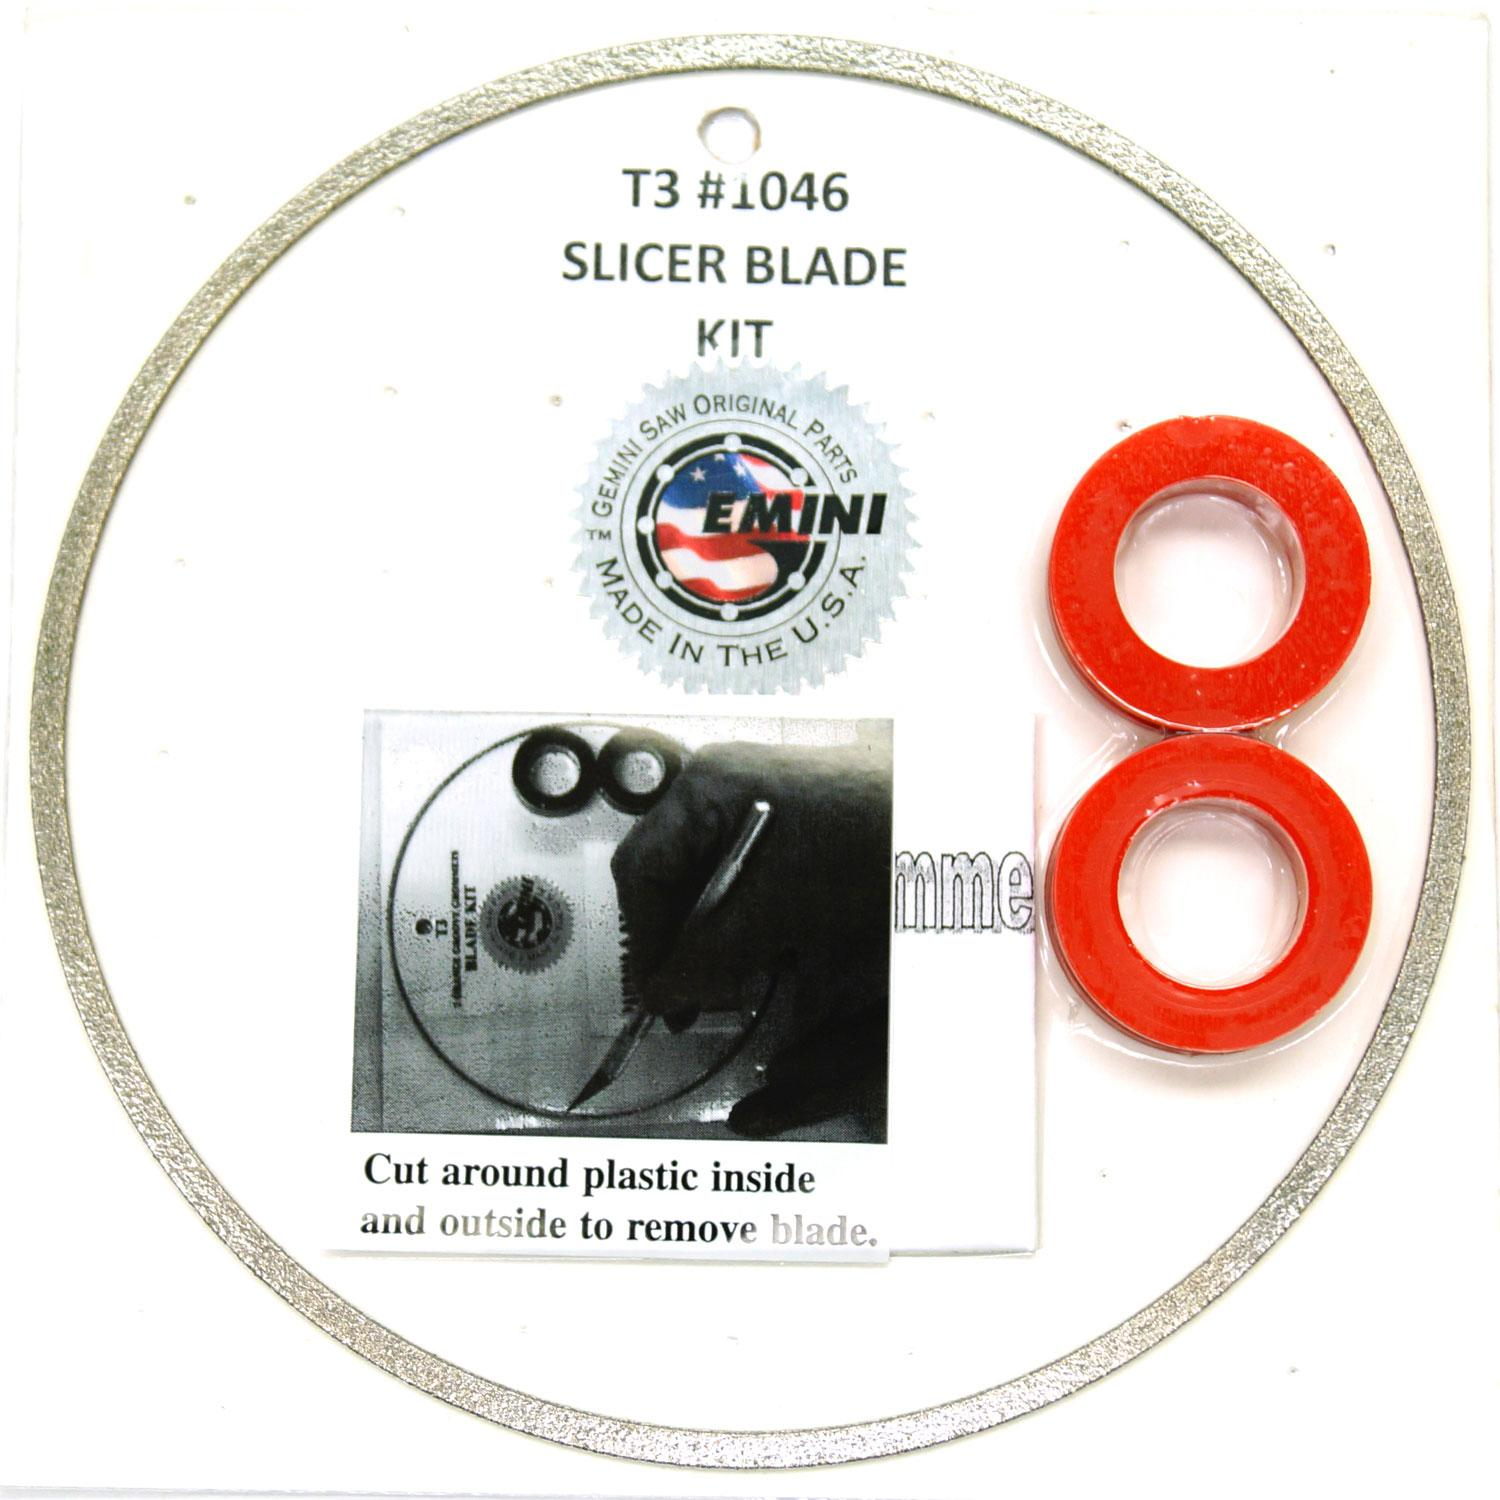 Taurus 3 Slicer Blade Kit